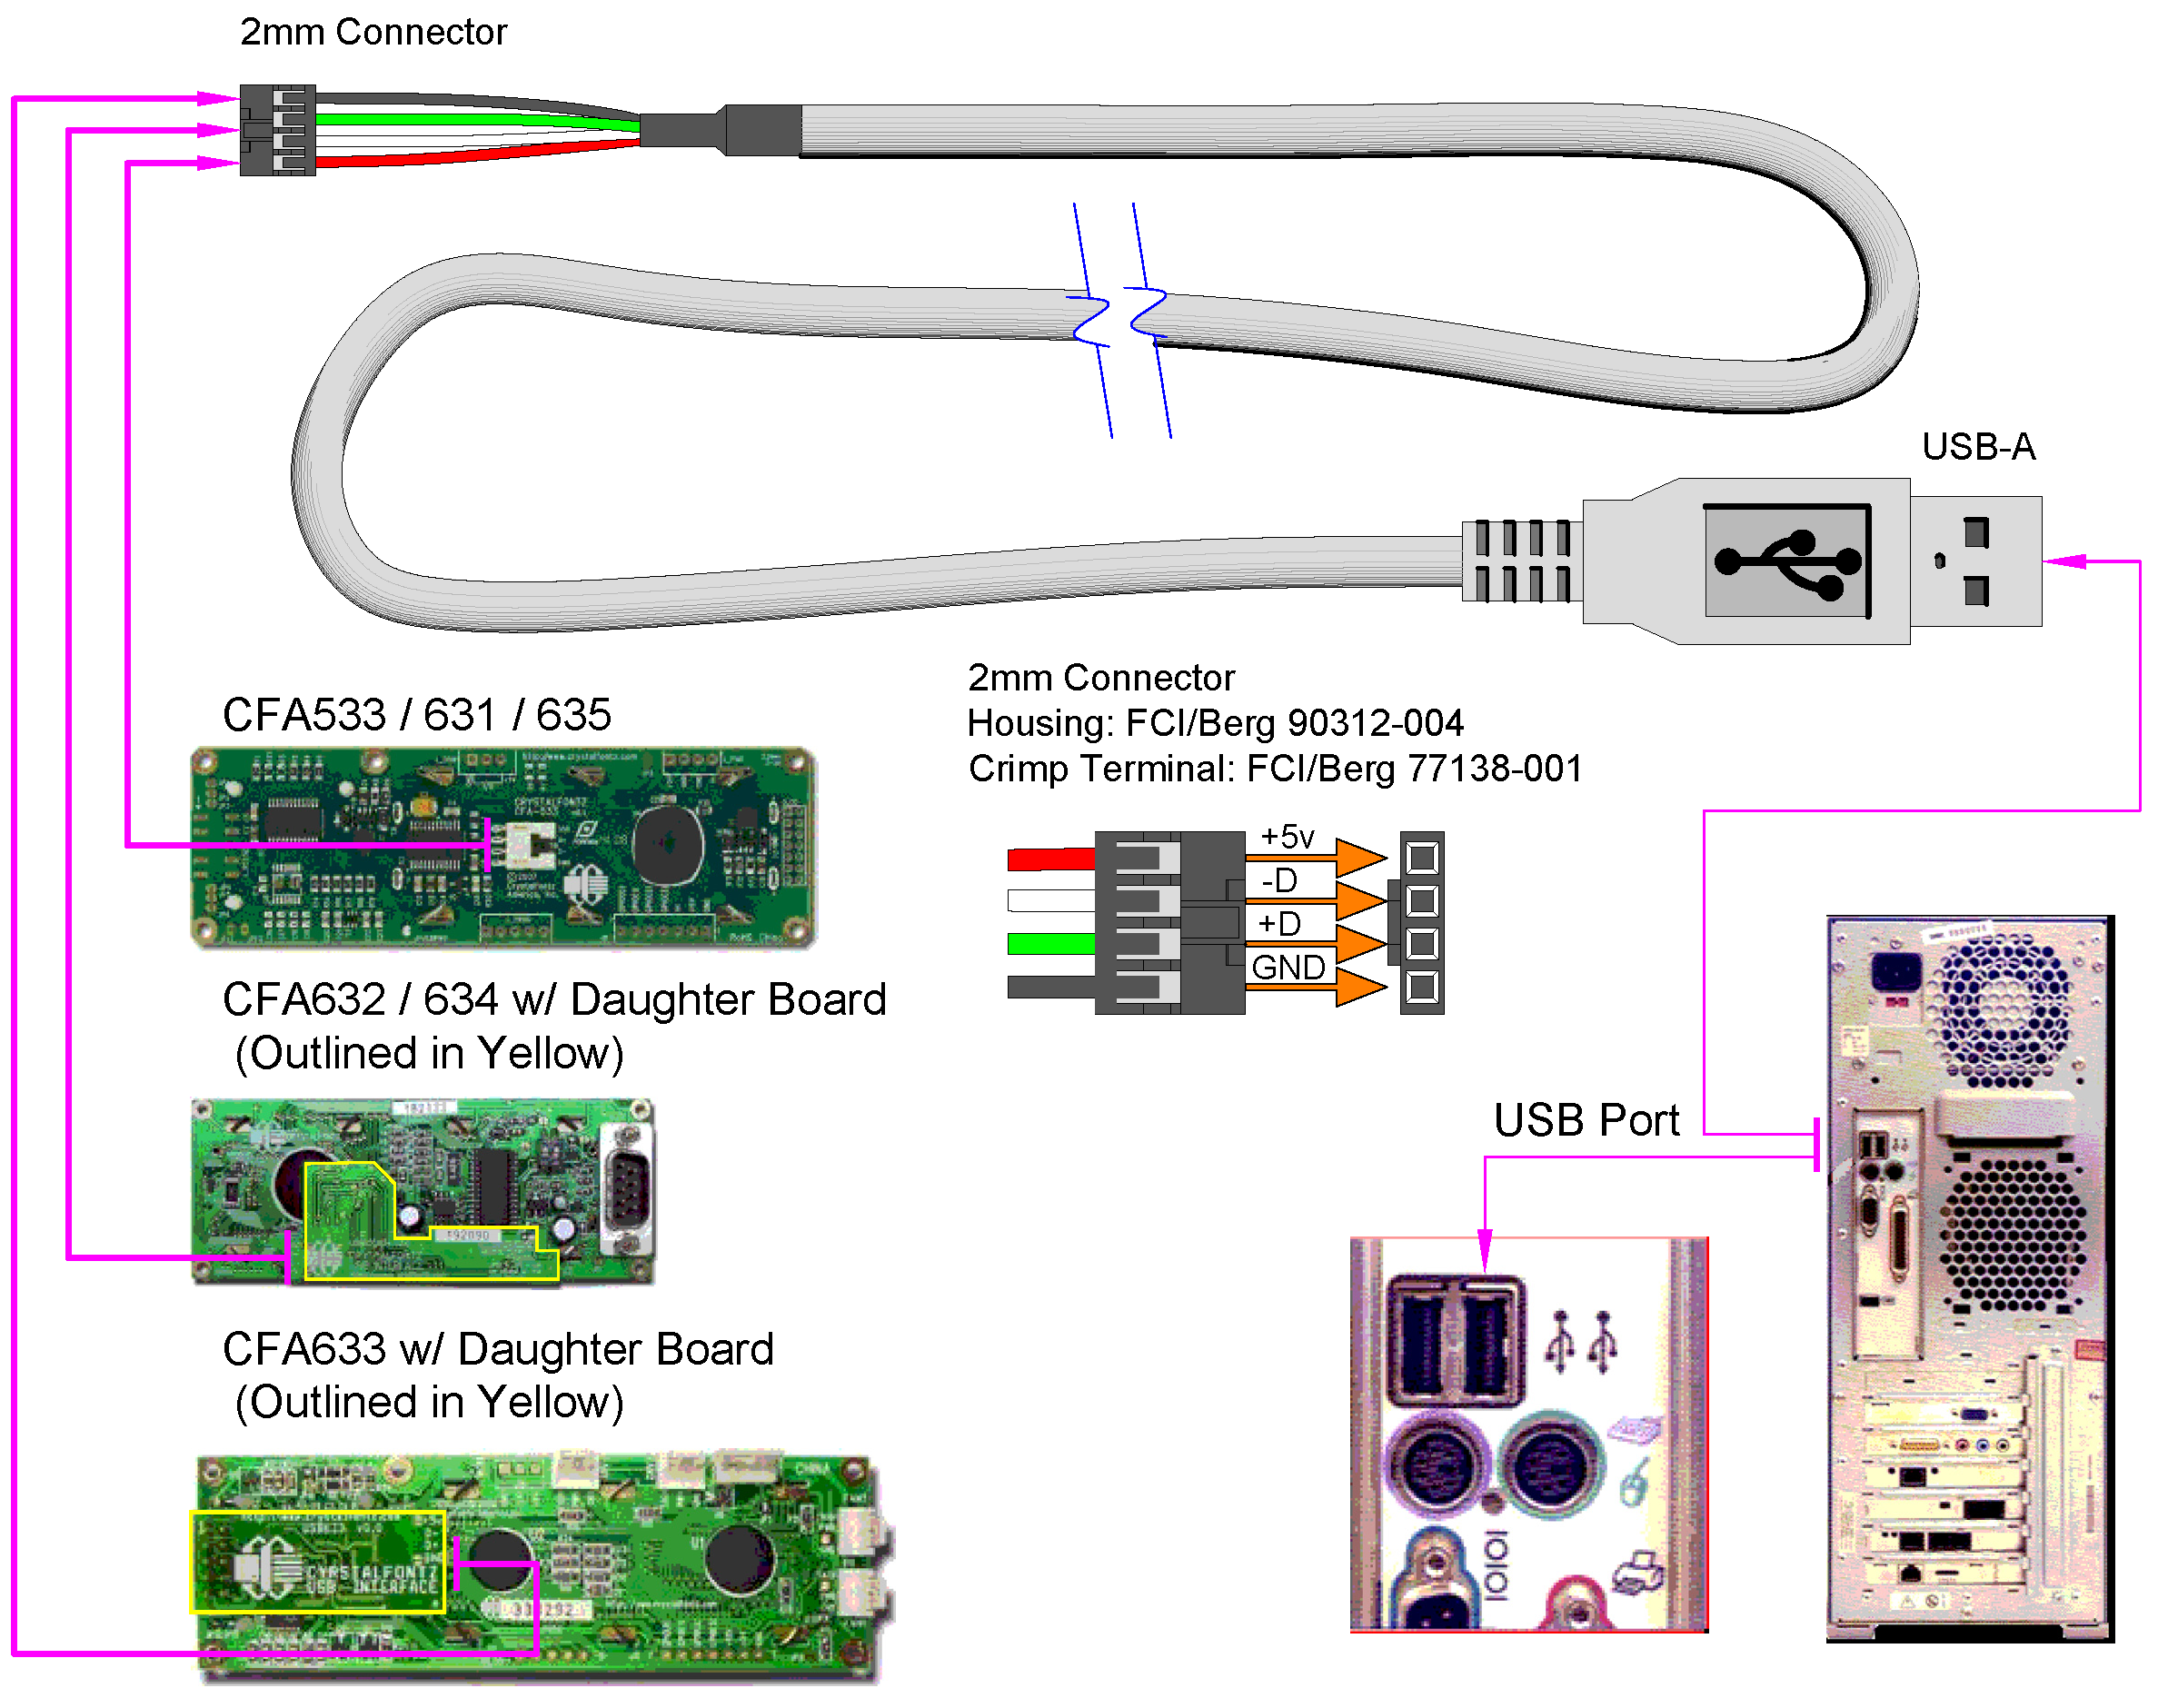 hight resolution of best of wiring diagram micro usb diagrams digramssample diagramimages wiringdiagramsample wiringdiagram